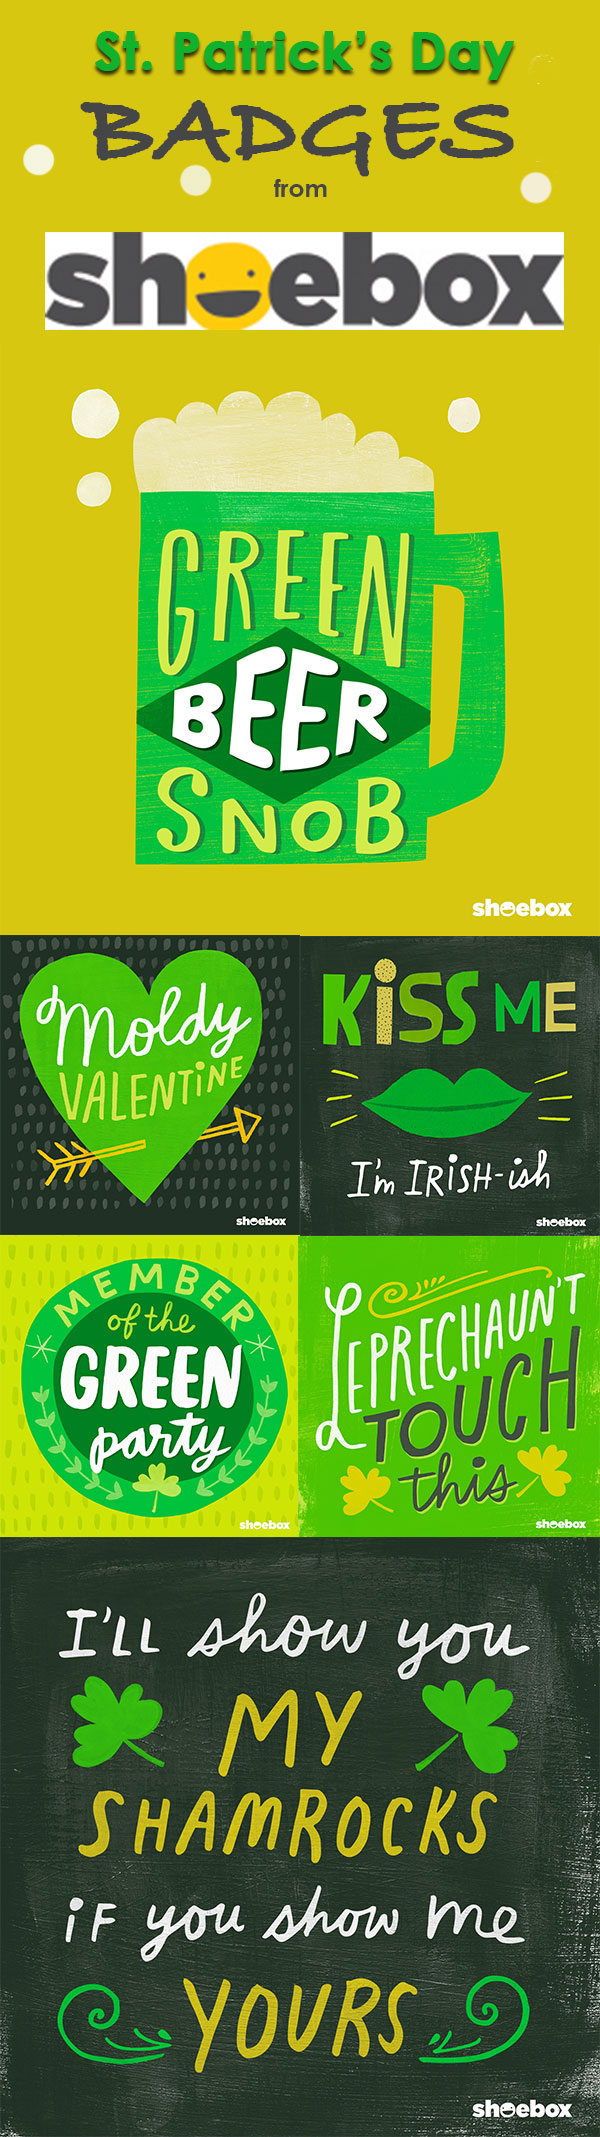 Liven up your St. Patrick's Day party with these FREE printables from Shoebox!